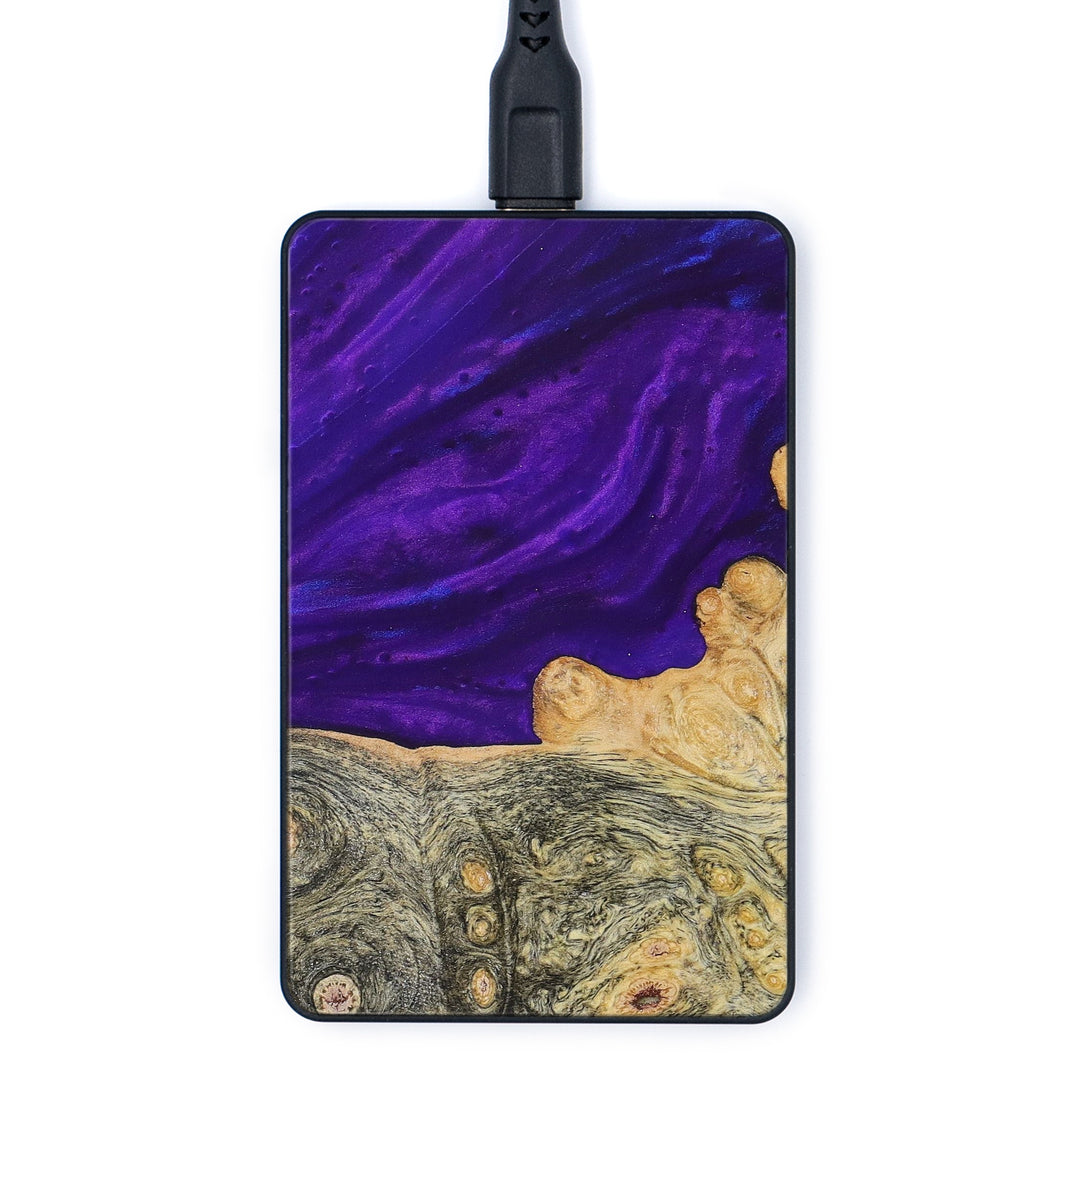 Thin Wood+Resin Wireless Charger - Katharina (Purple, 367977)